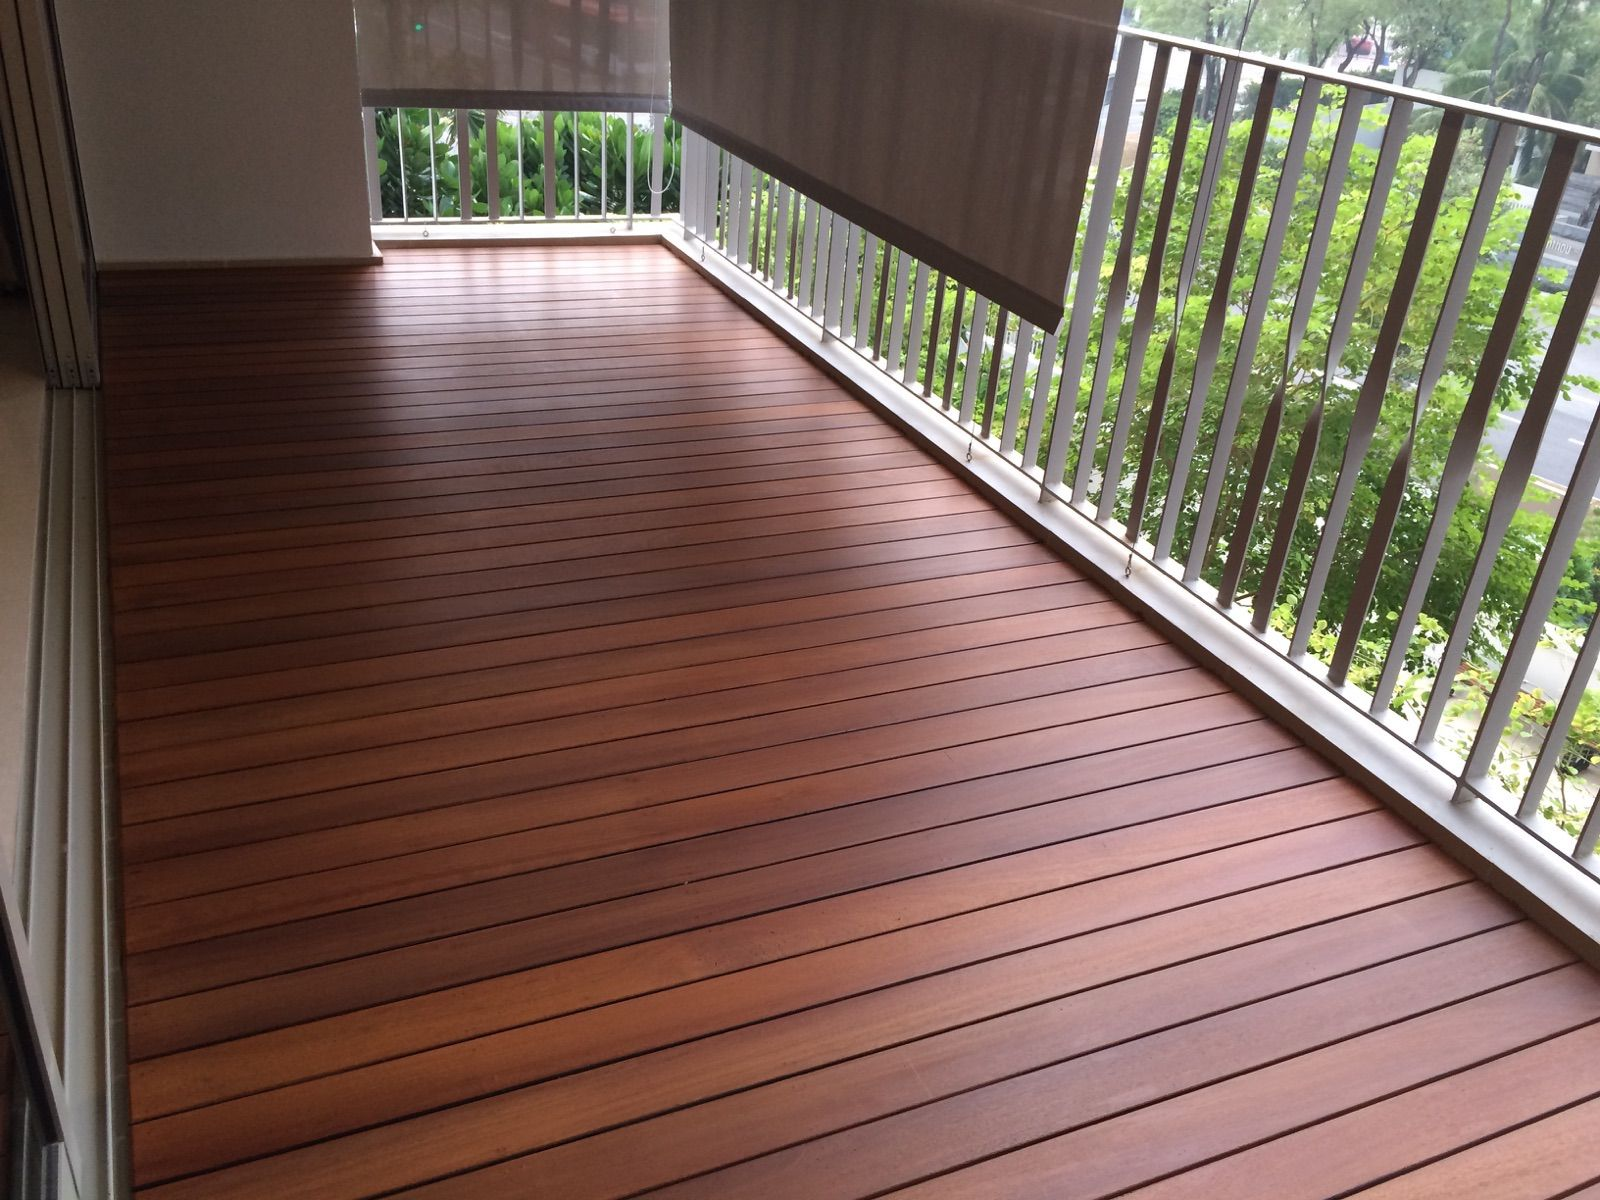 Composite decking tiles prices wpc decking composite deck composite decking tiles prices dailygadgetfo Image collections